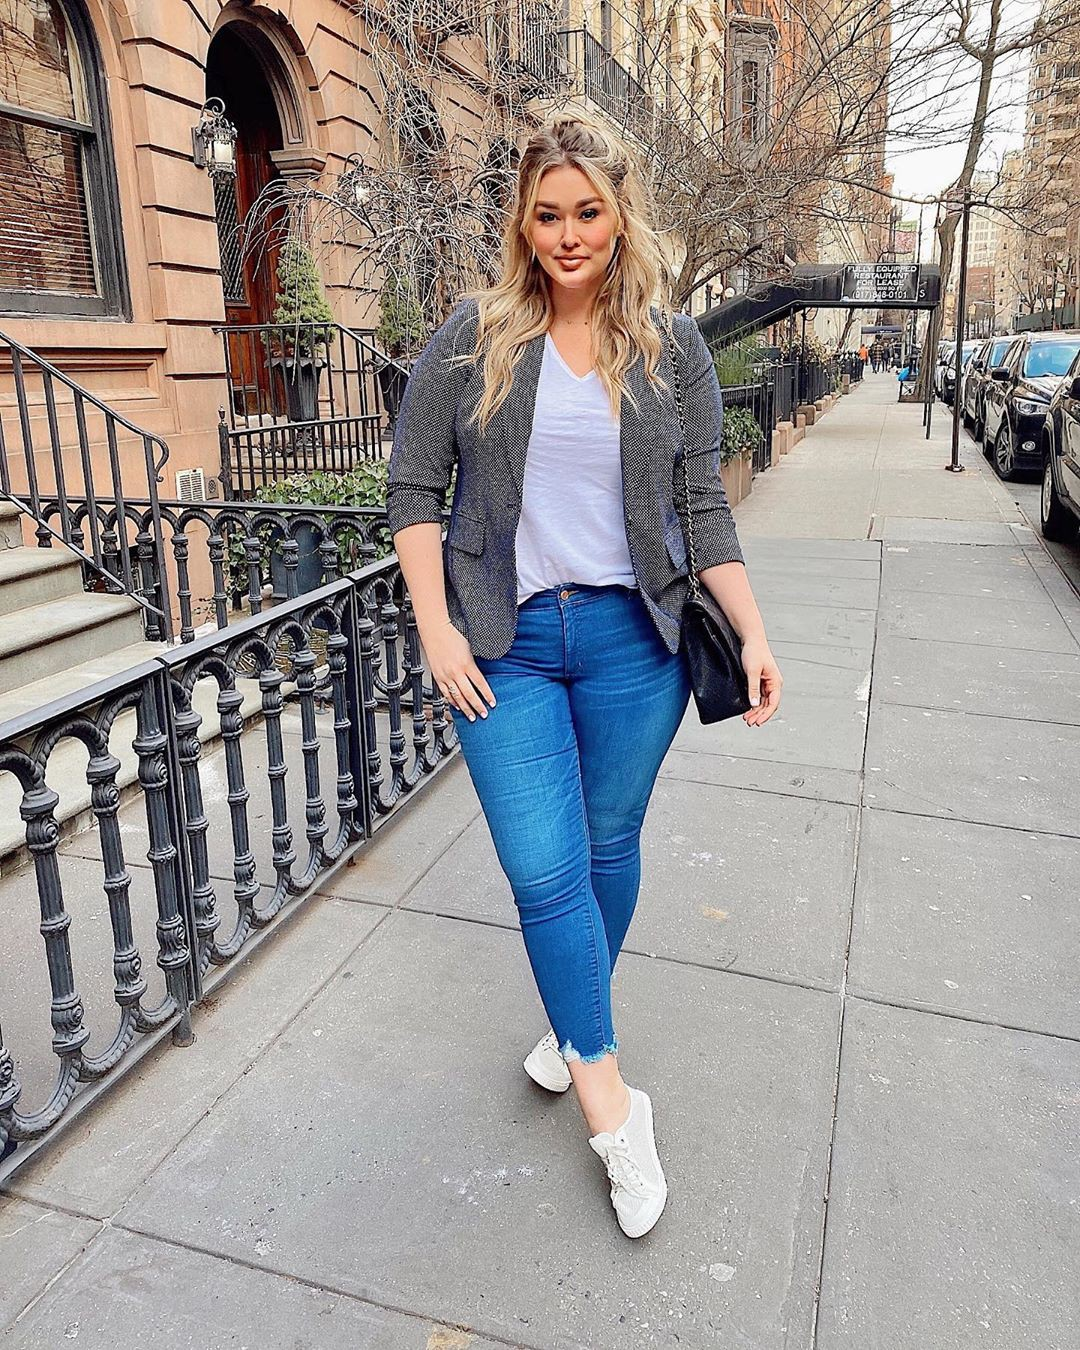 White and blue jacket, denim, jeans